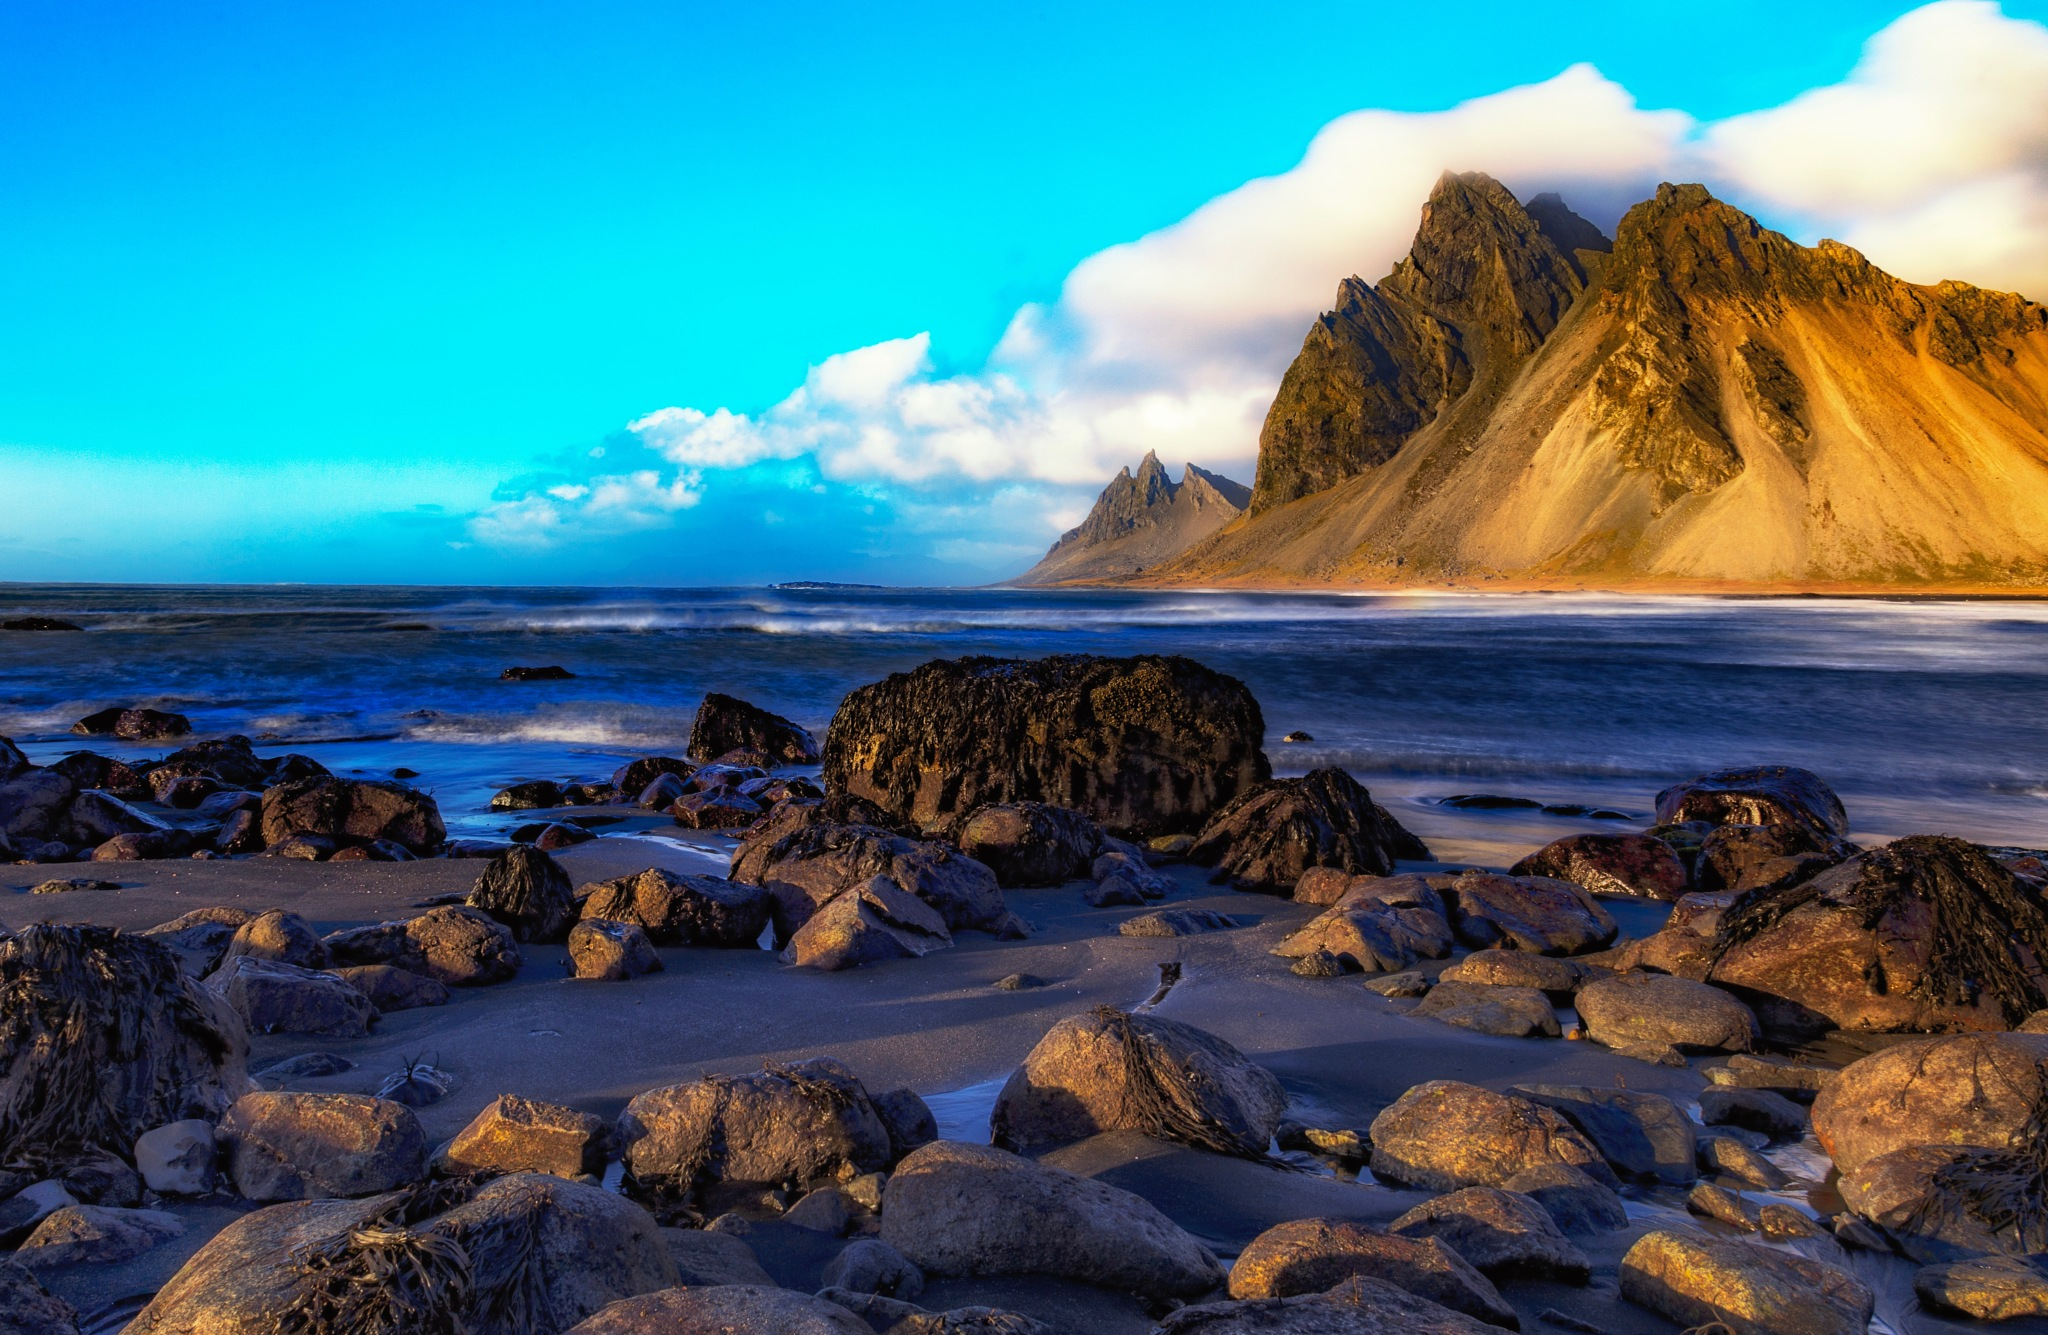 Icelandic Seascape by andré figueiredo